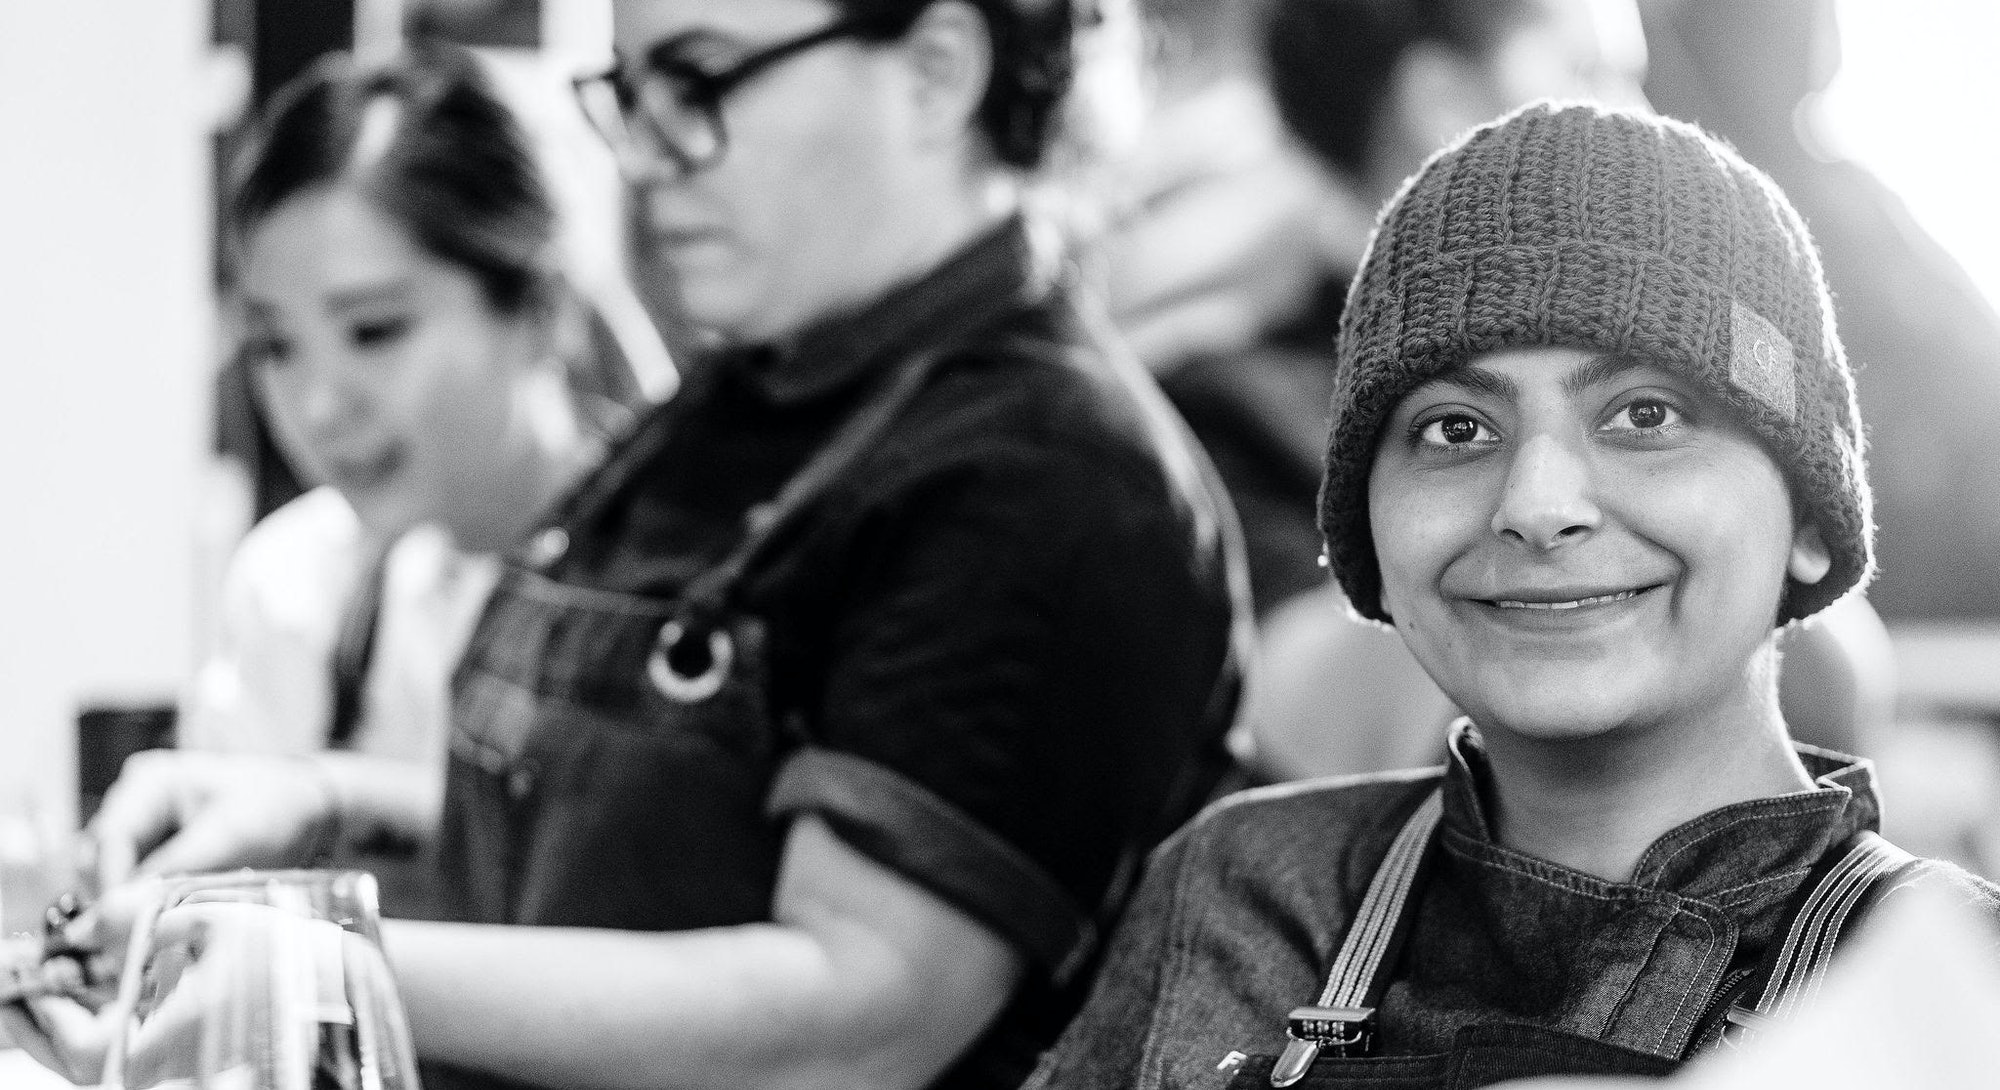 'Her Name Is Chef' spotlights female chefs and women in the food industry writ large.